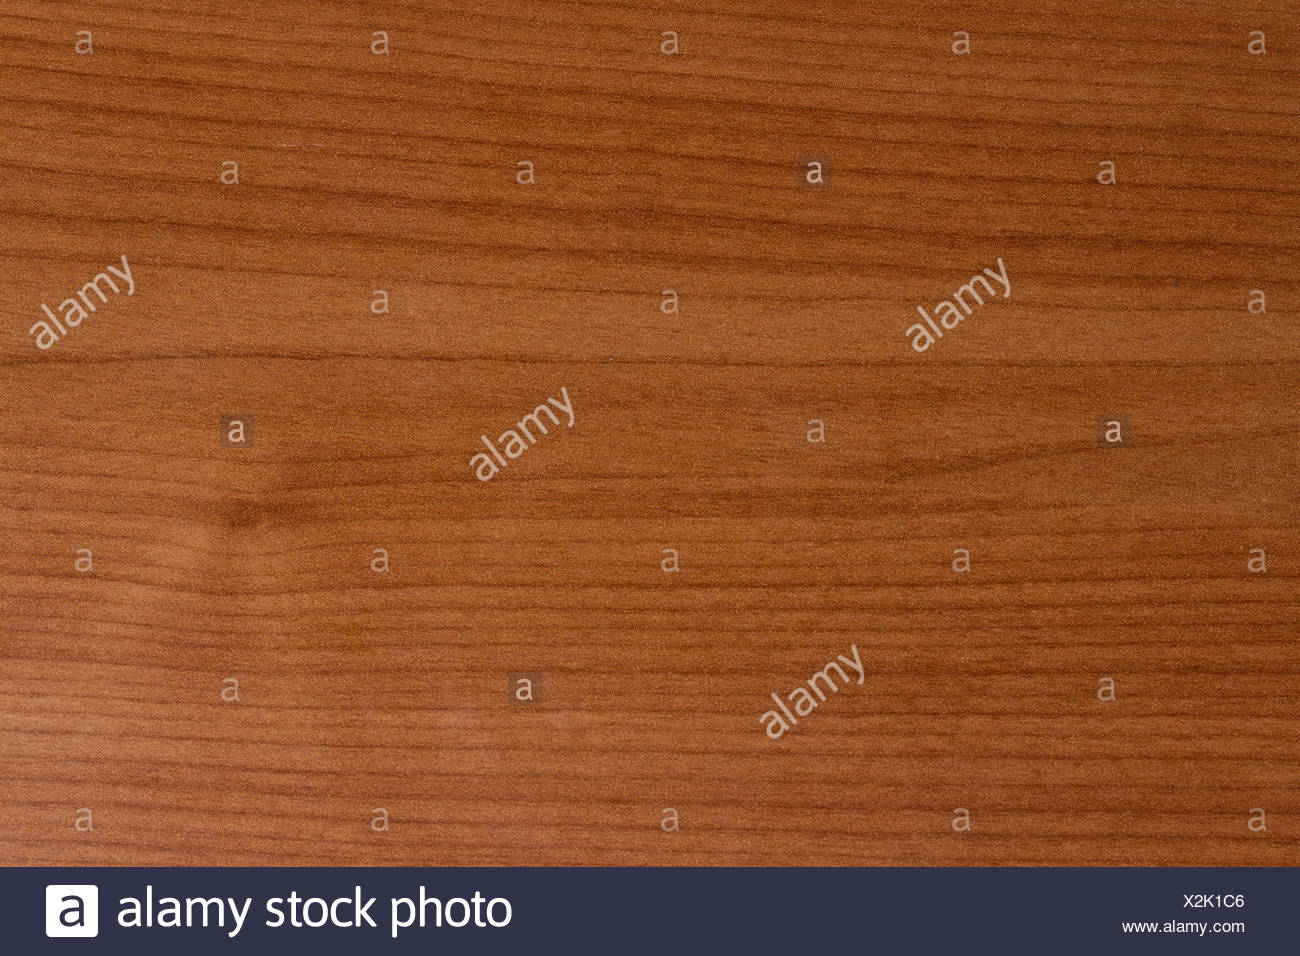 board desk colour wood brown brownish brunette rough decor material drug anaesthetic addictive drug surface timber parquet - Stock Image